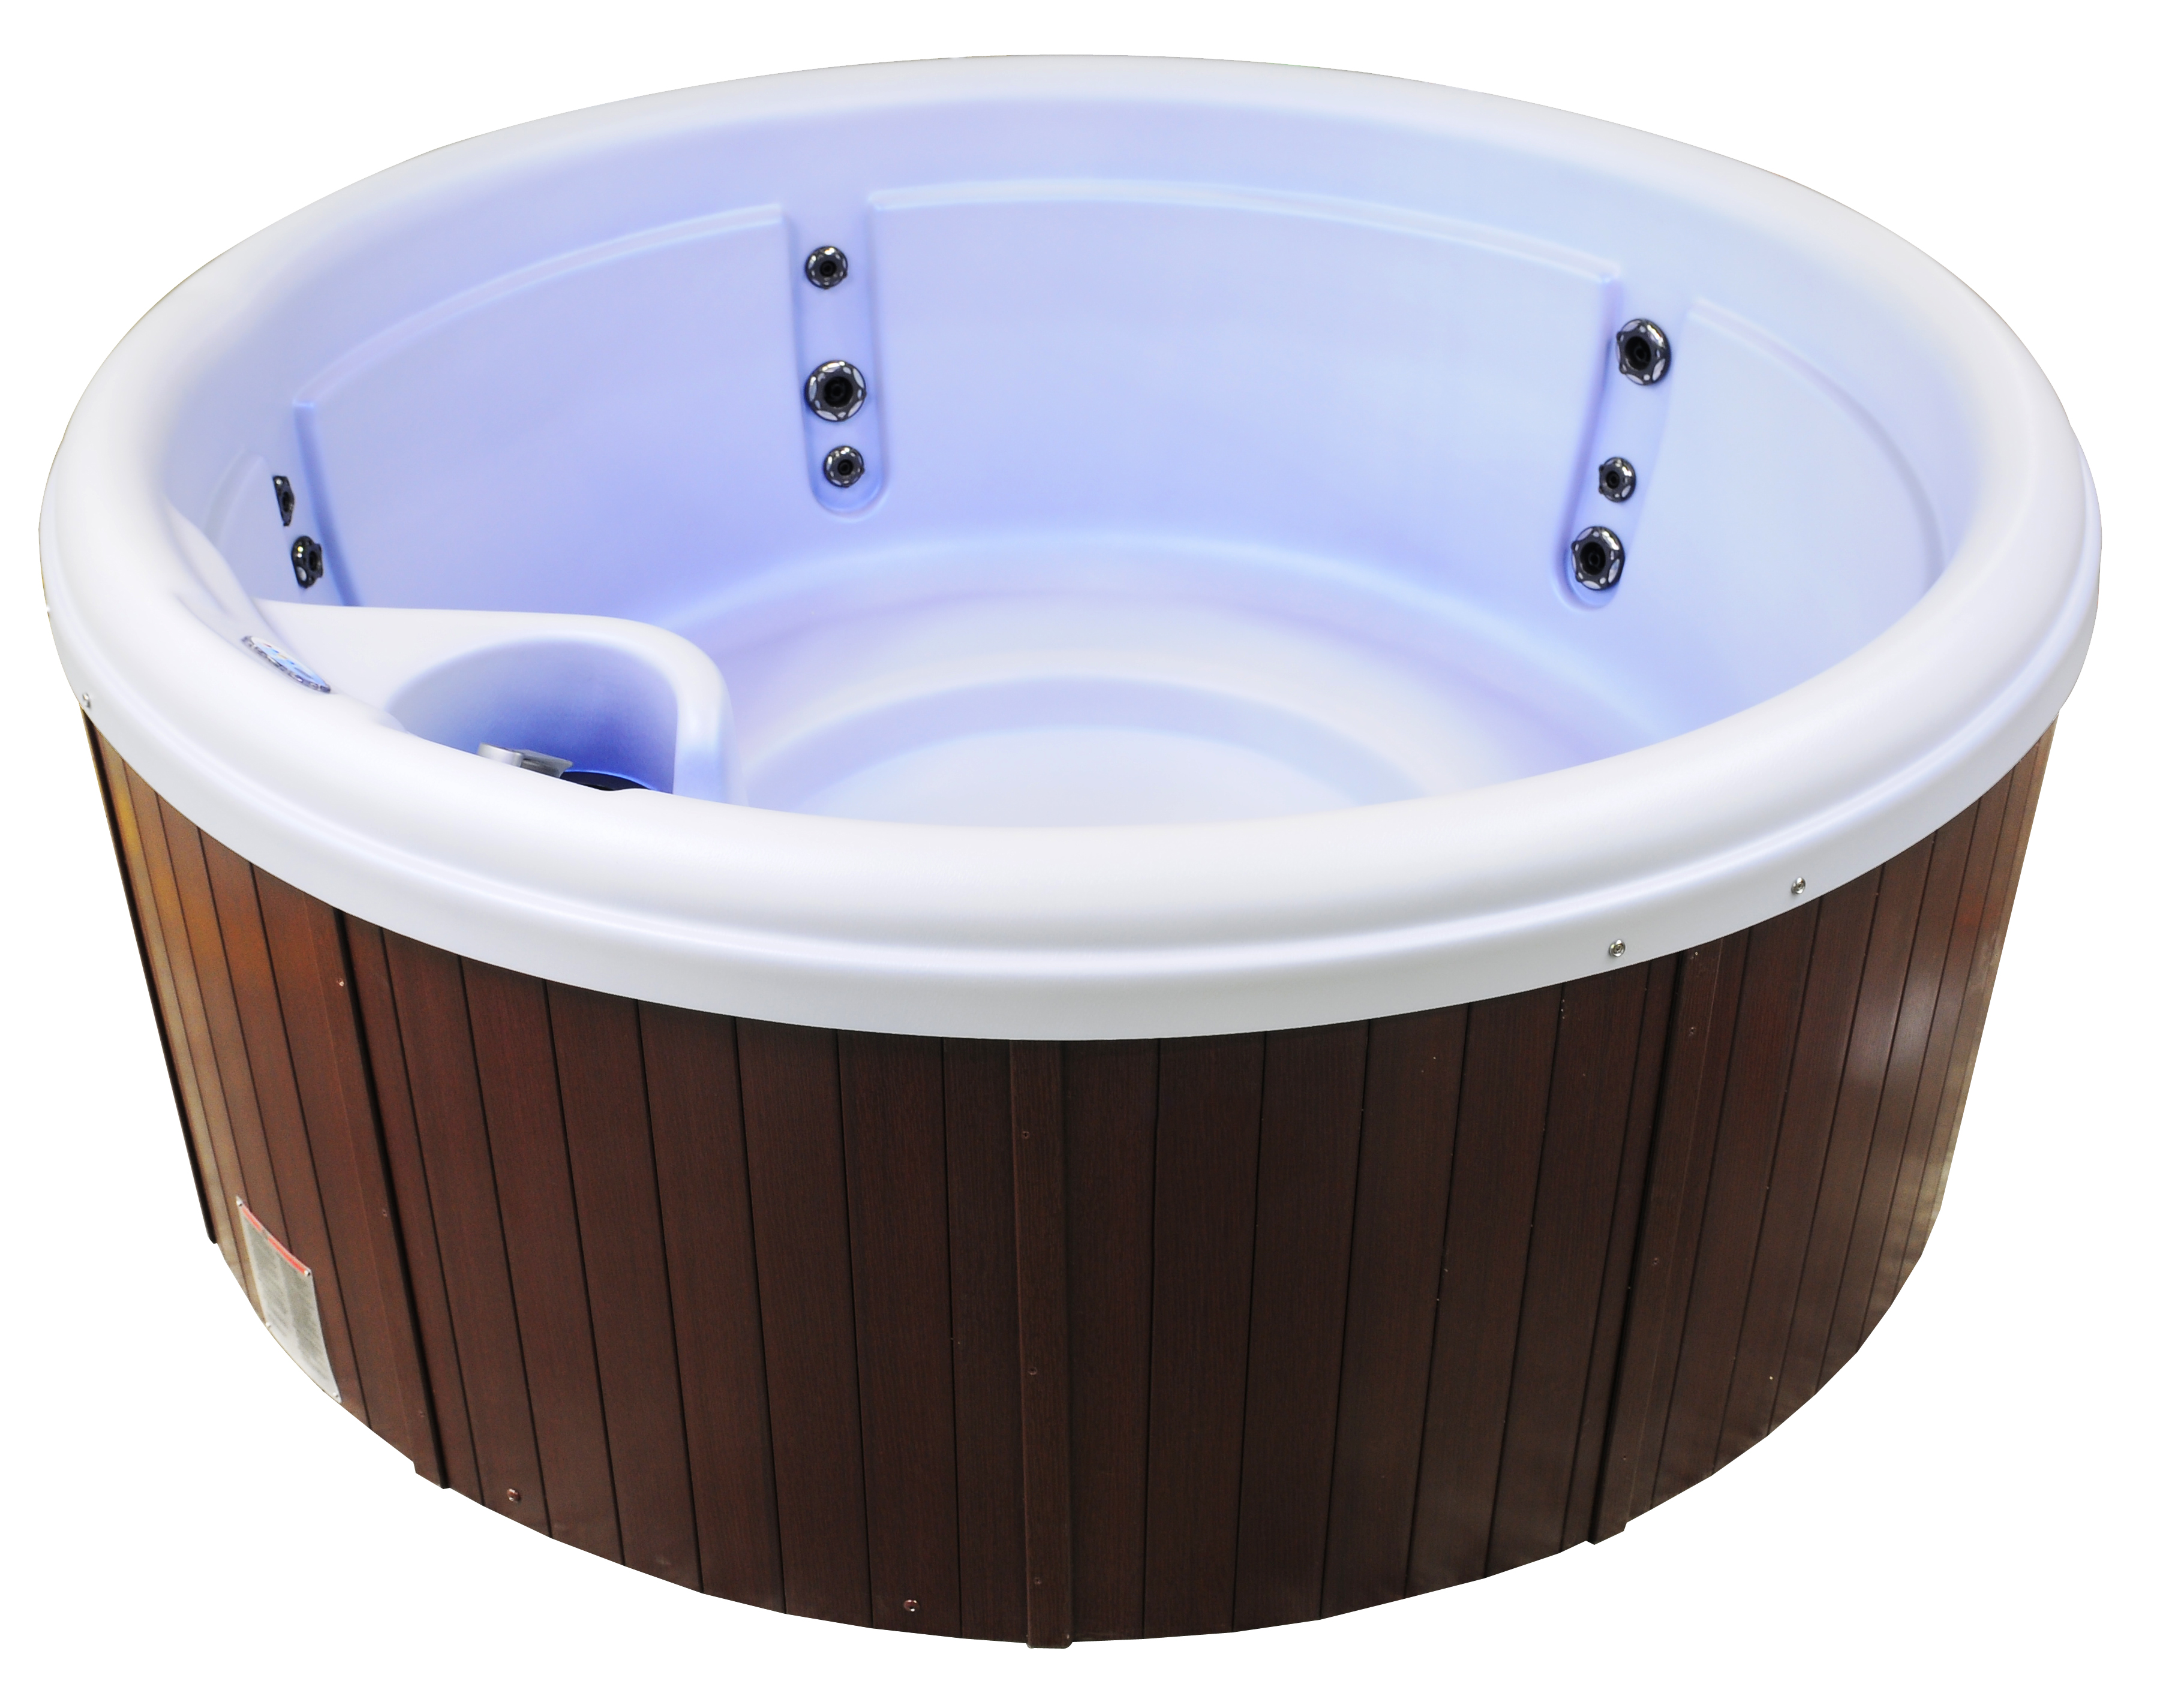 hydropool hot tubs serenity 4 special edition round. Black Bedroom Furniture Sets. Home Design Ideas